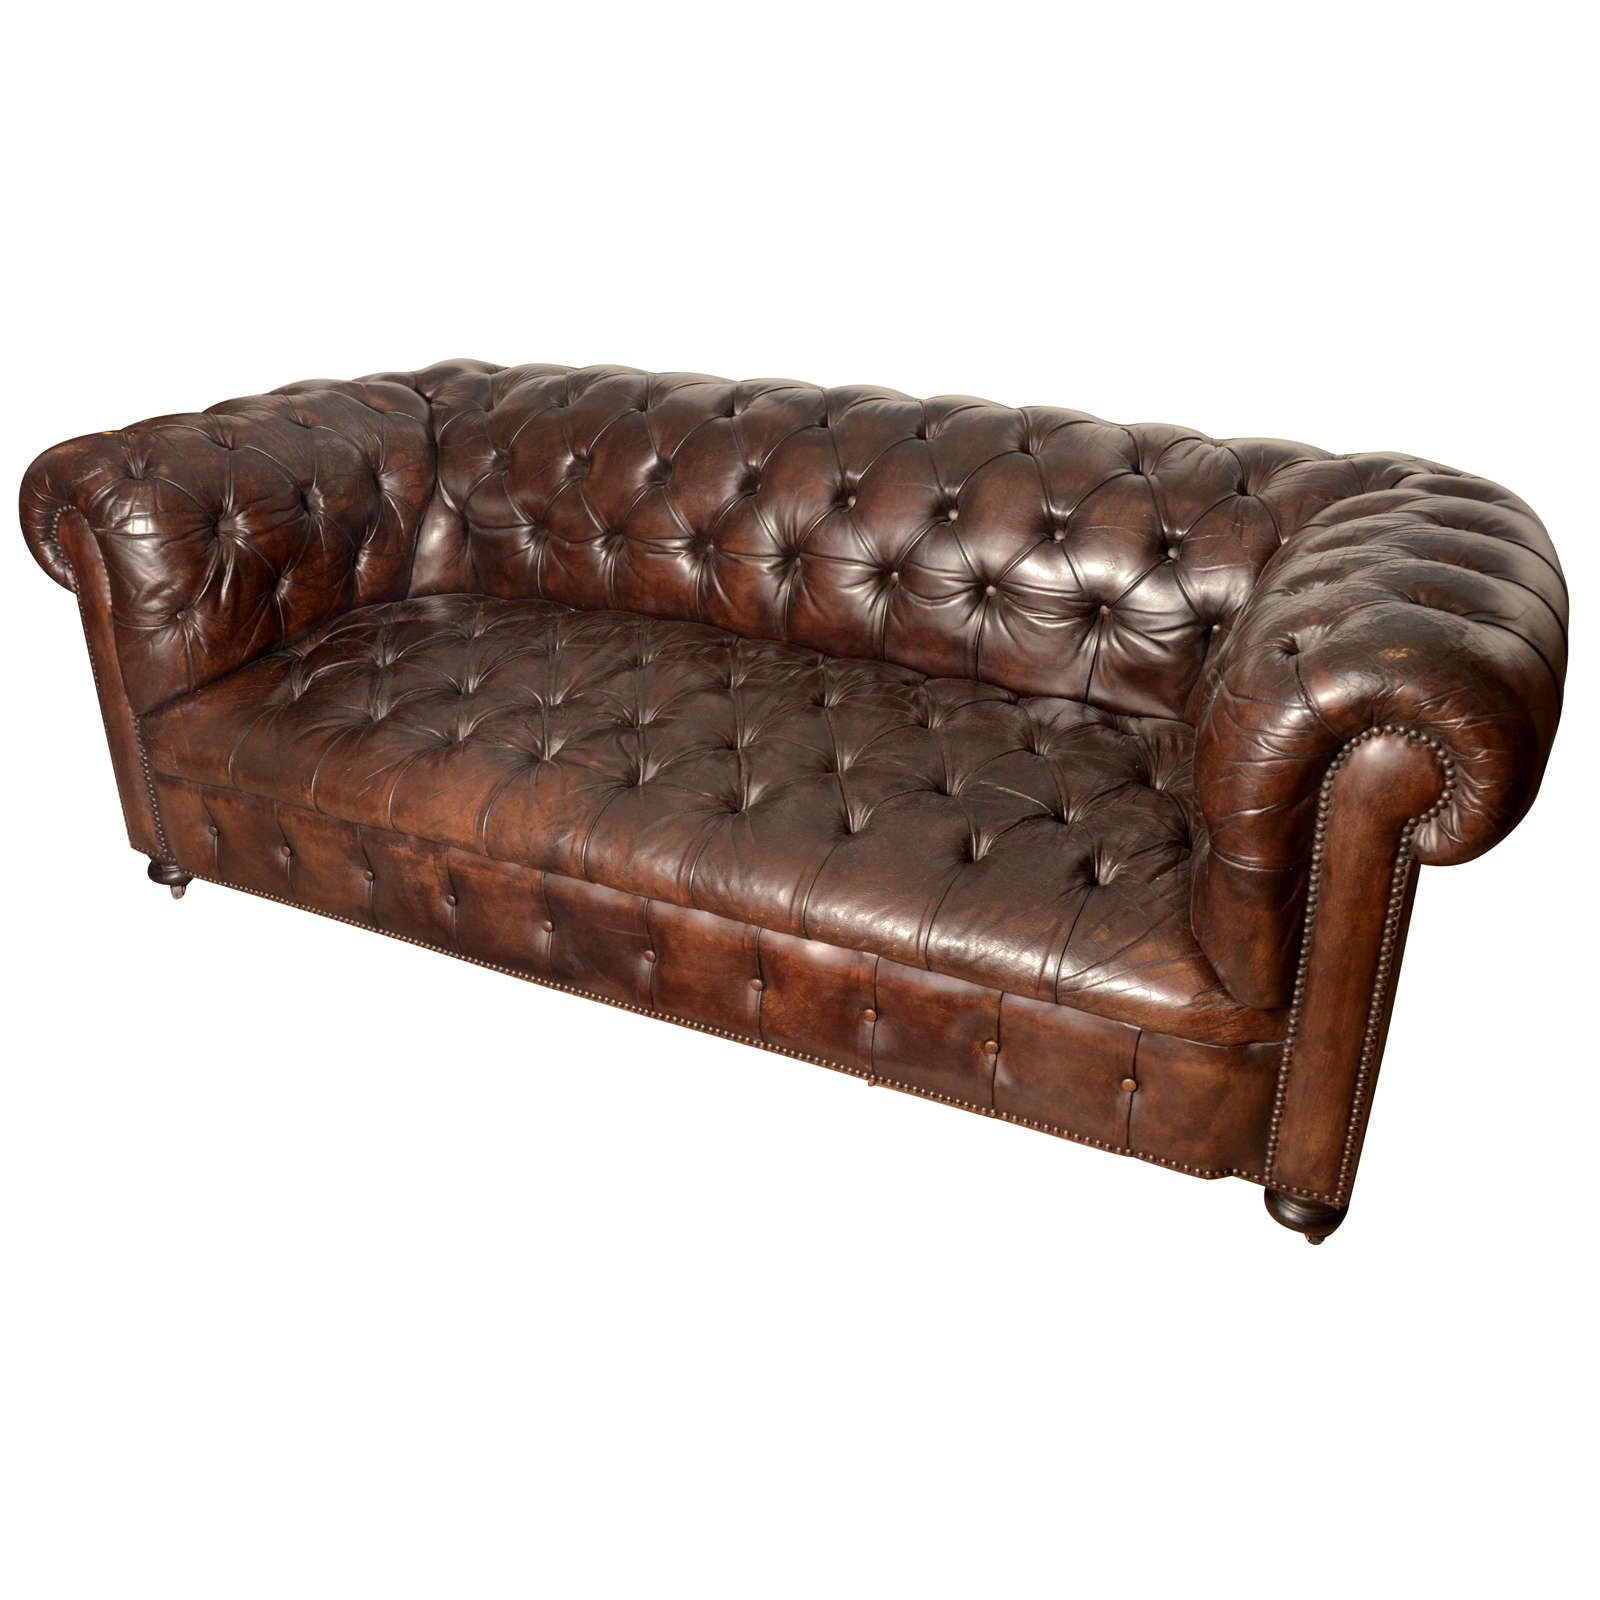 Chesterfield sofa  French Mid-Century Chesterfield Sofa in dark brown For Sale at 1stdibs